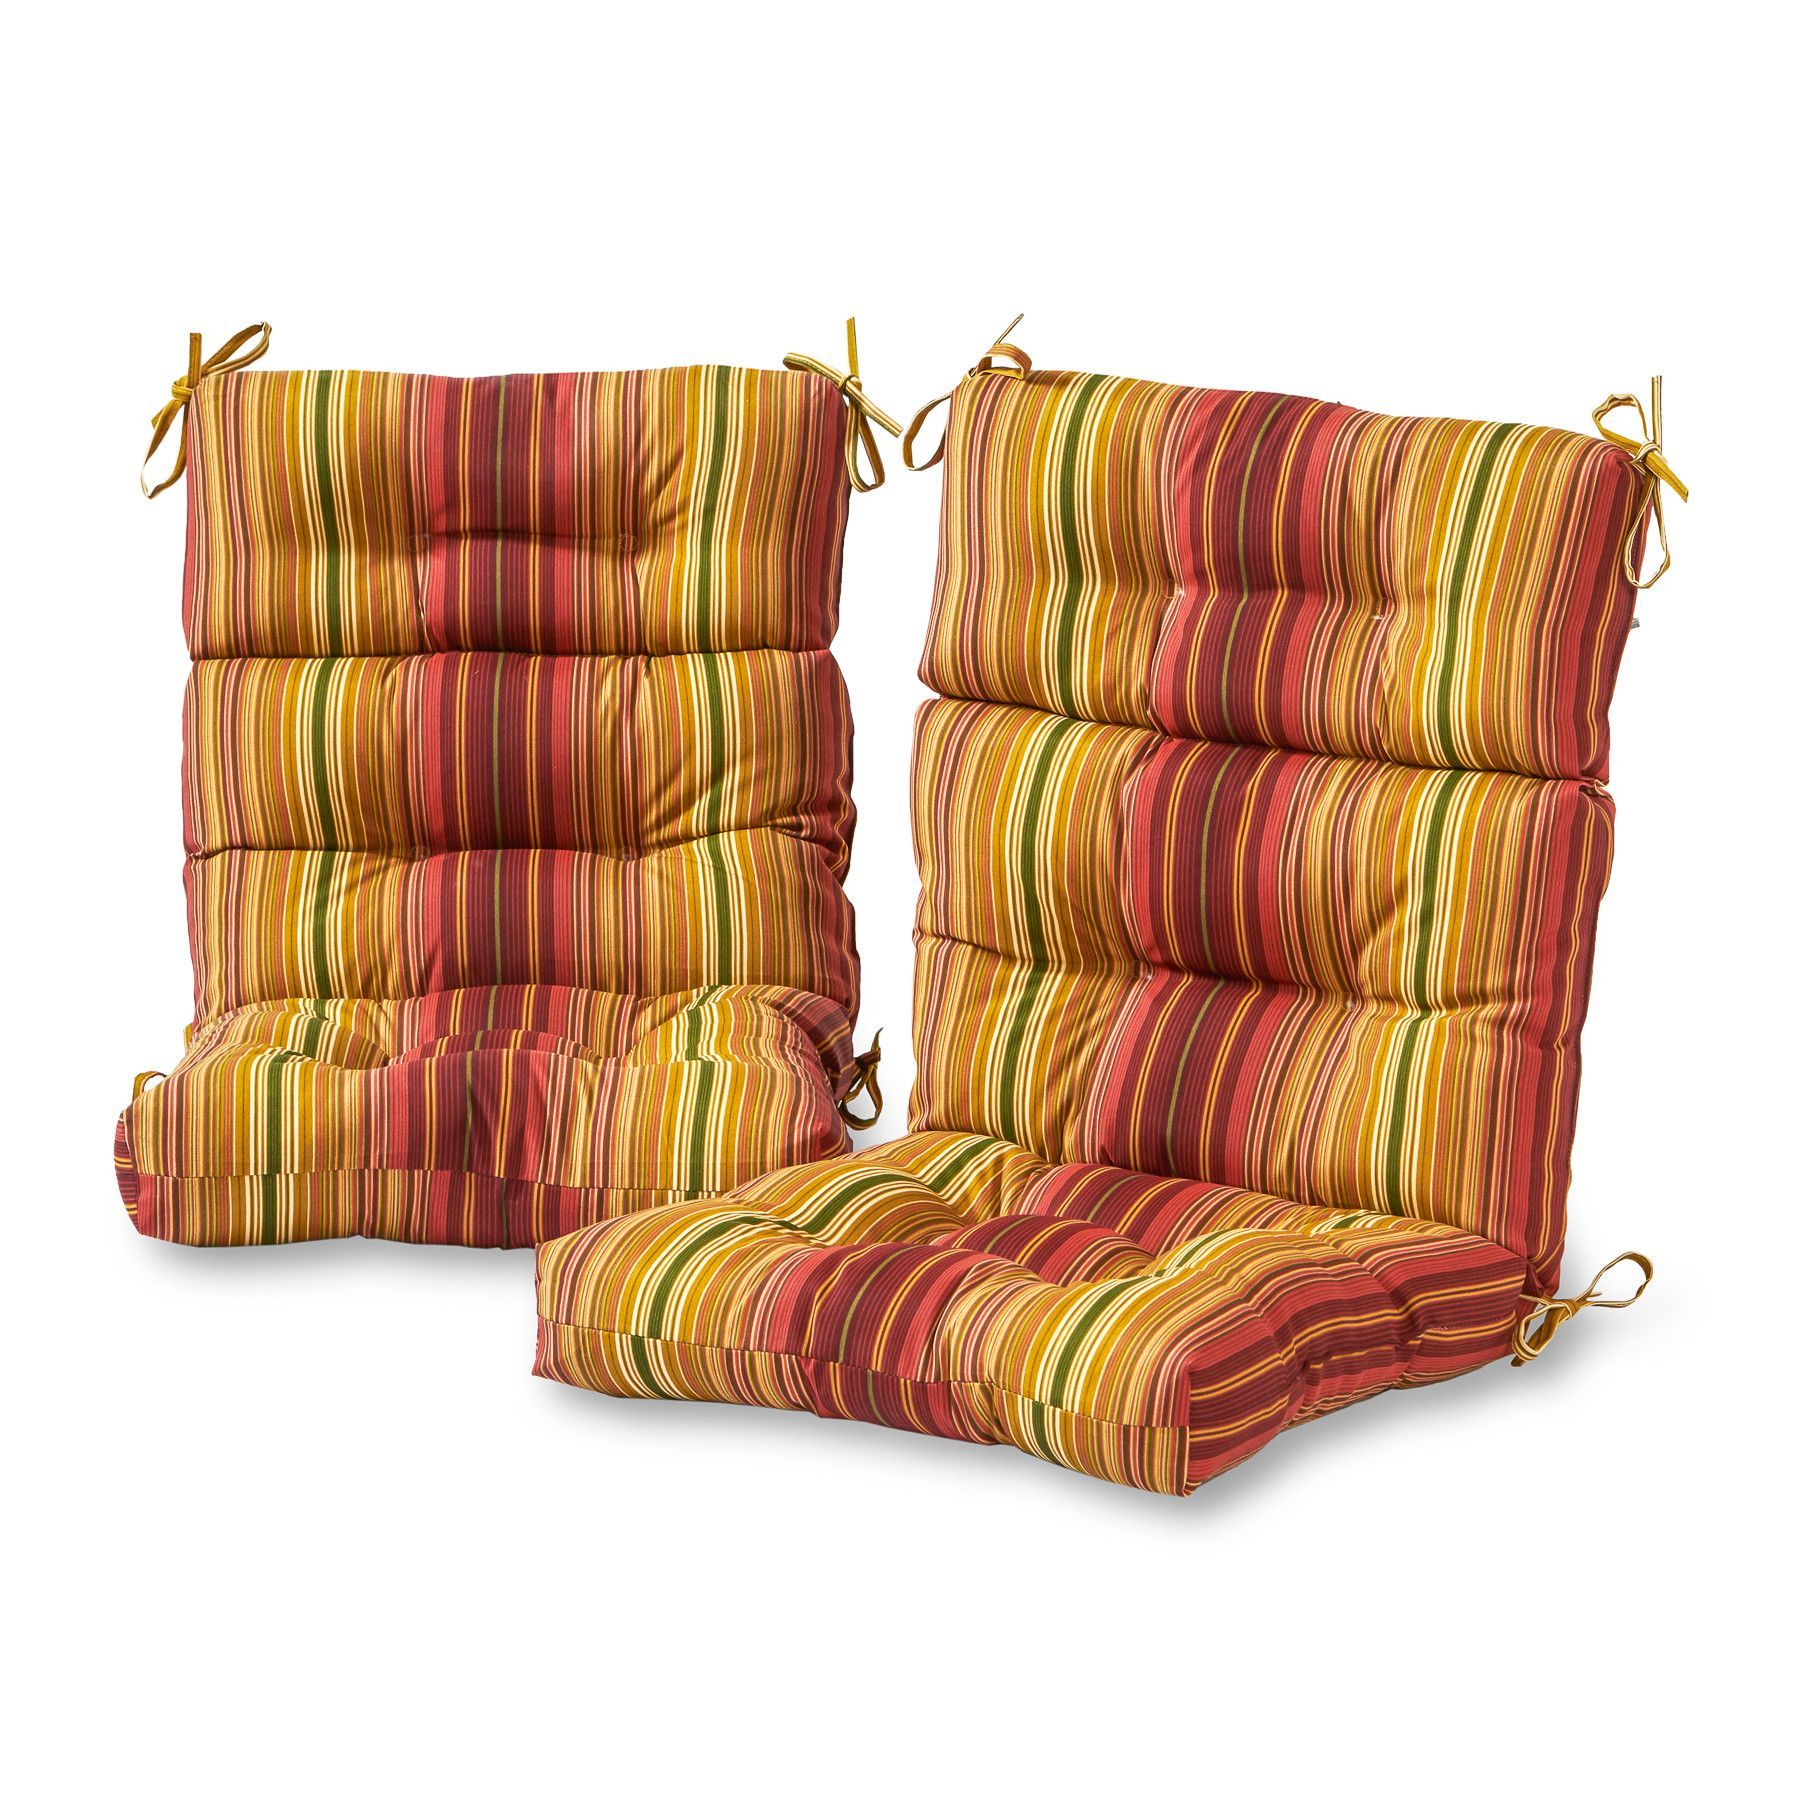 Outdoor Highback Chair Cushion Set SET OF 2 High back